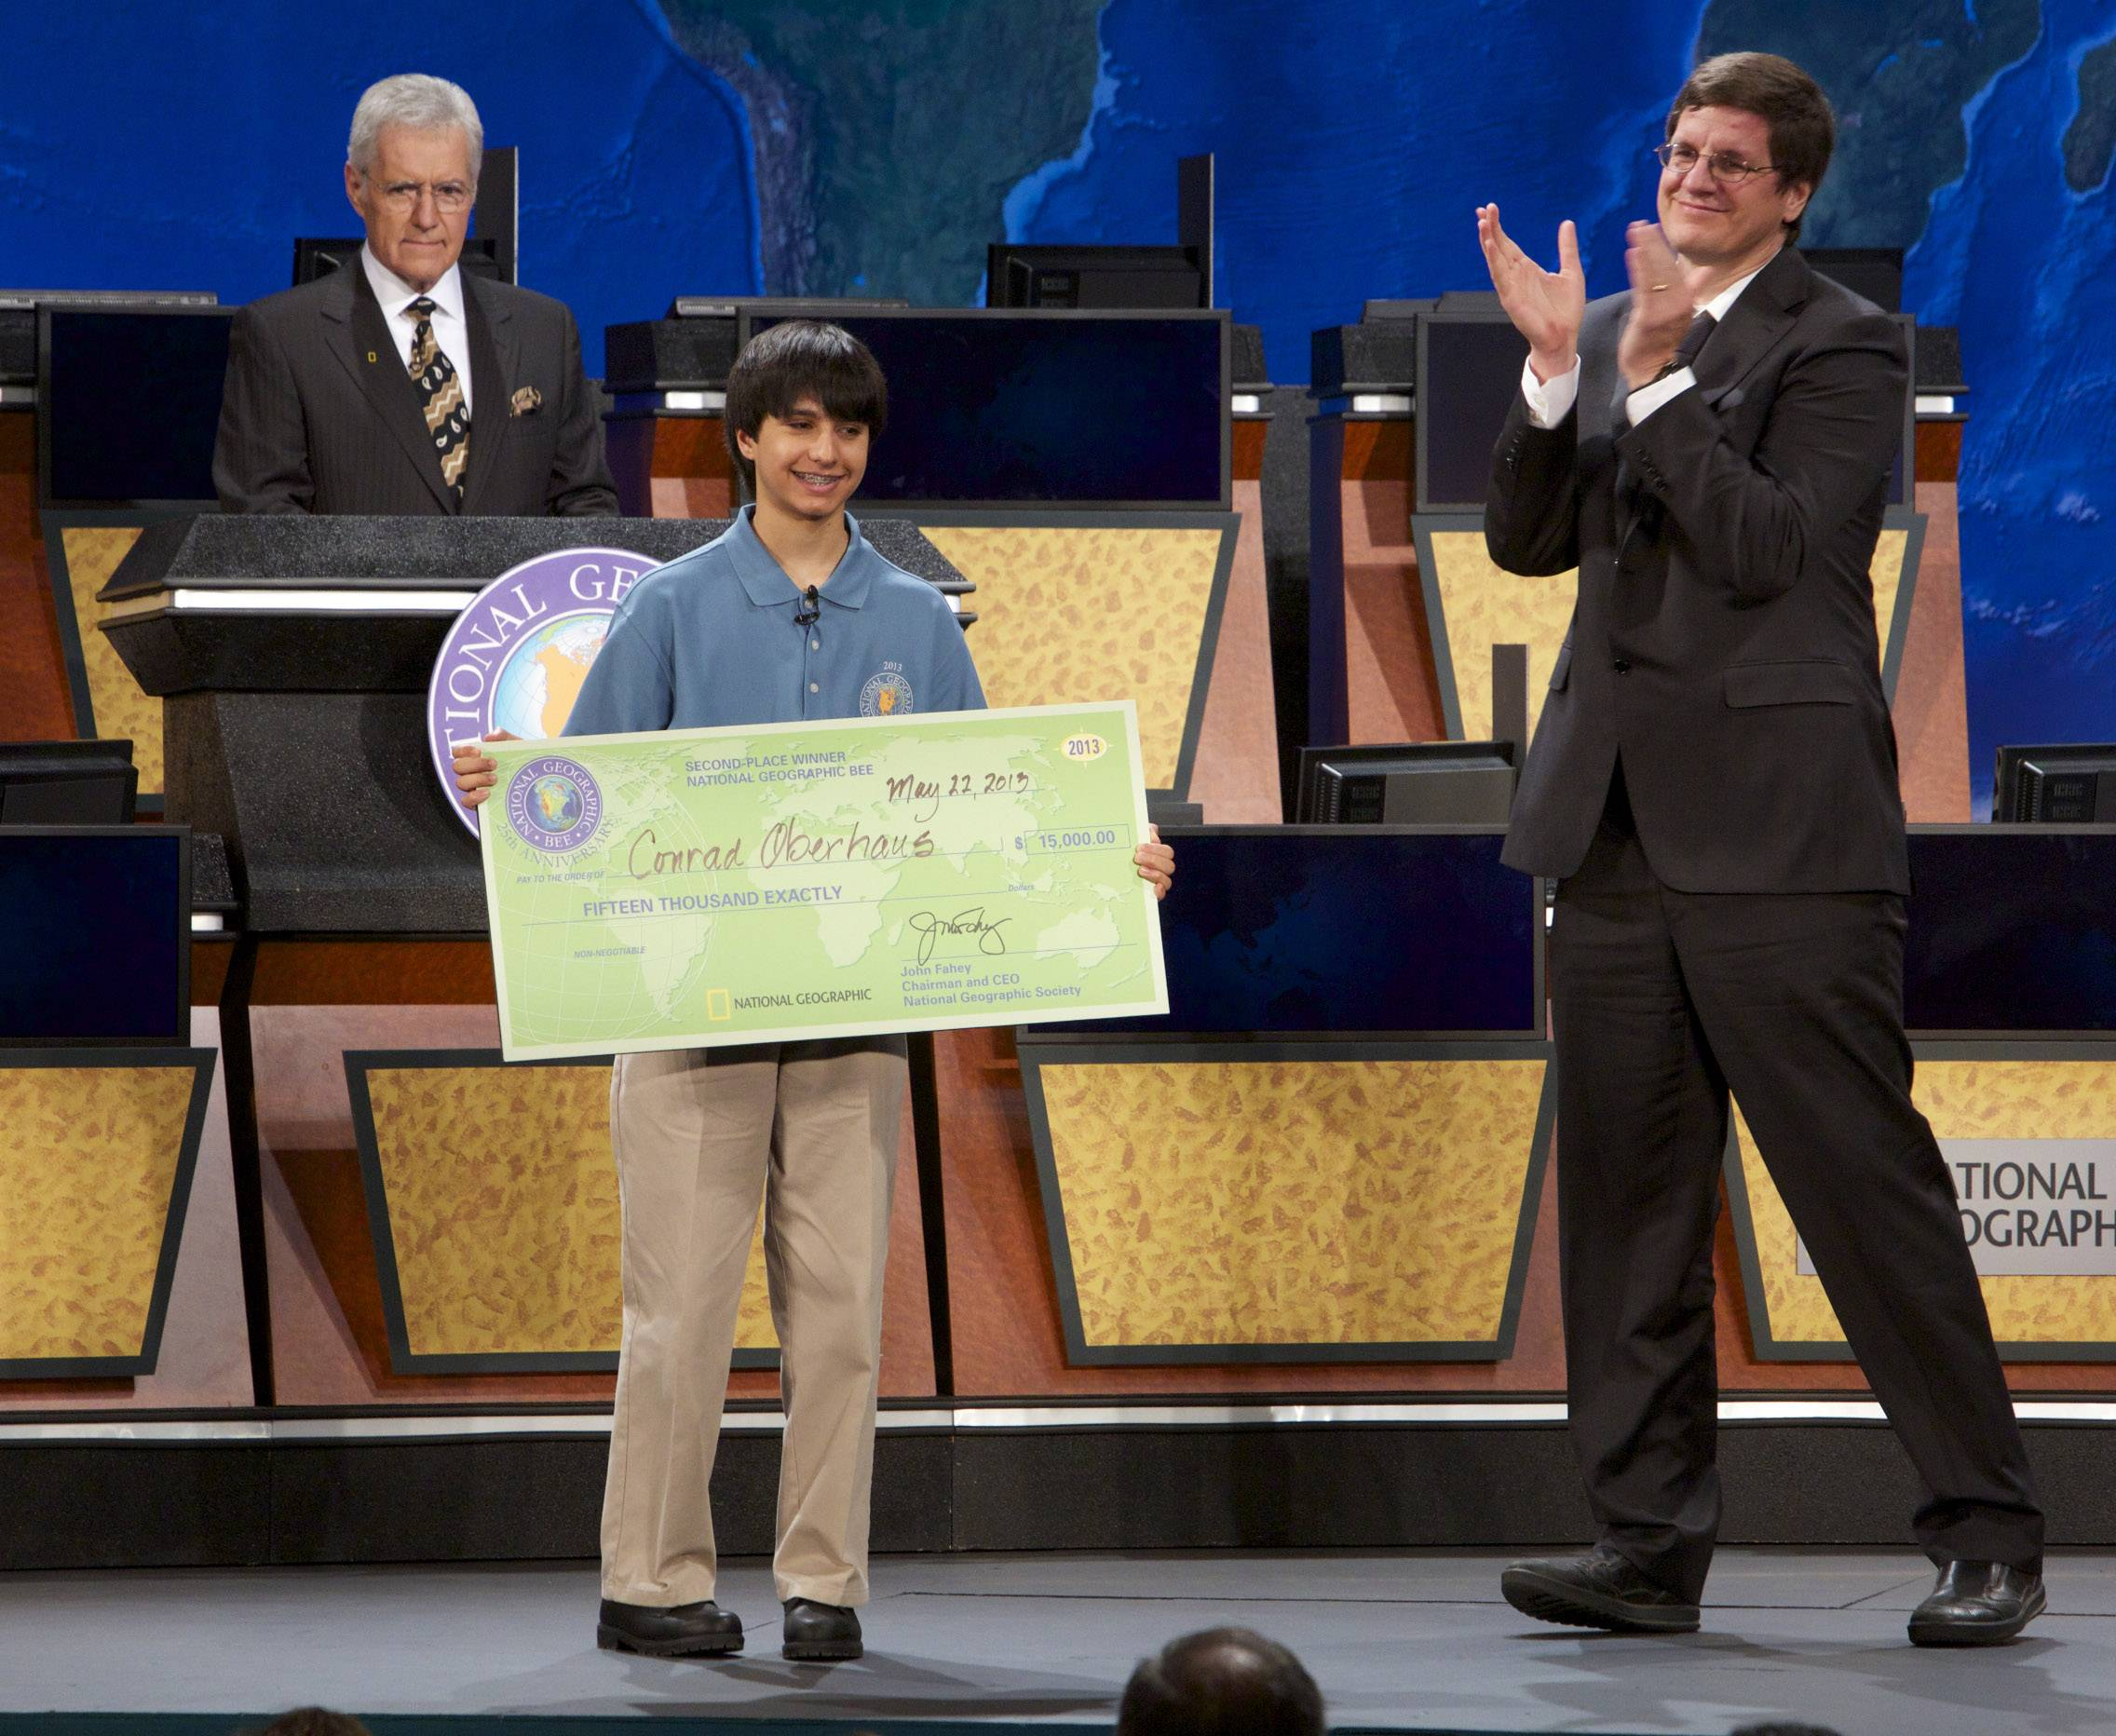 Alex Trebek, center, hosts the 2013 Geography Bee Finals on Wednesday at the National Theatre in Washington, D.C. Lake County's Conrad Oberhaus, right, competes with Sathwik Karnik.